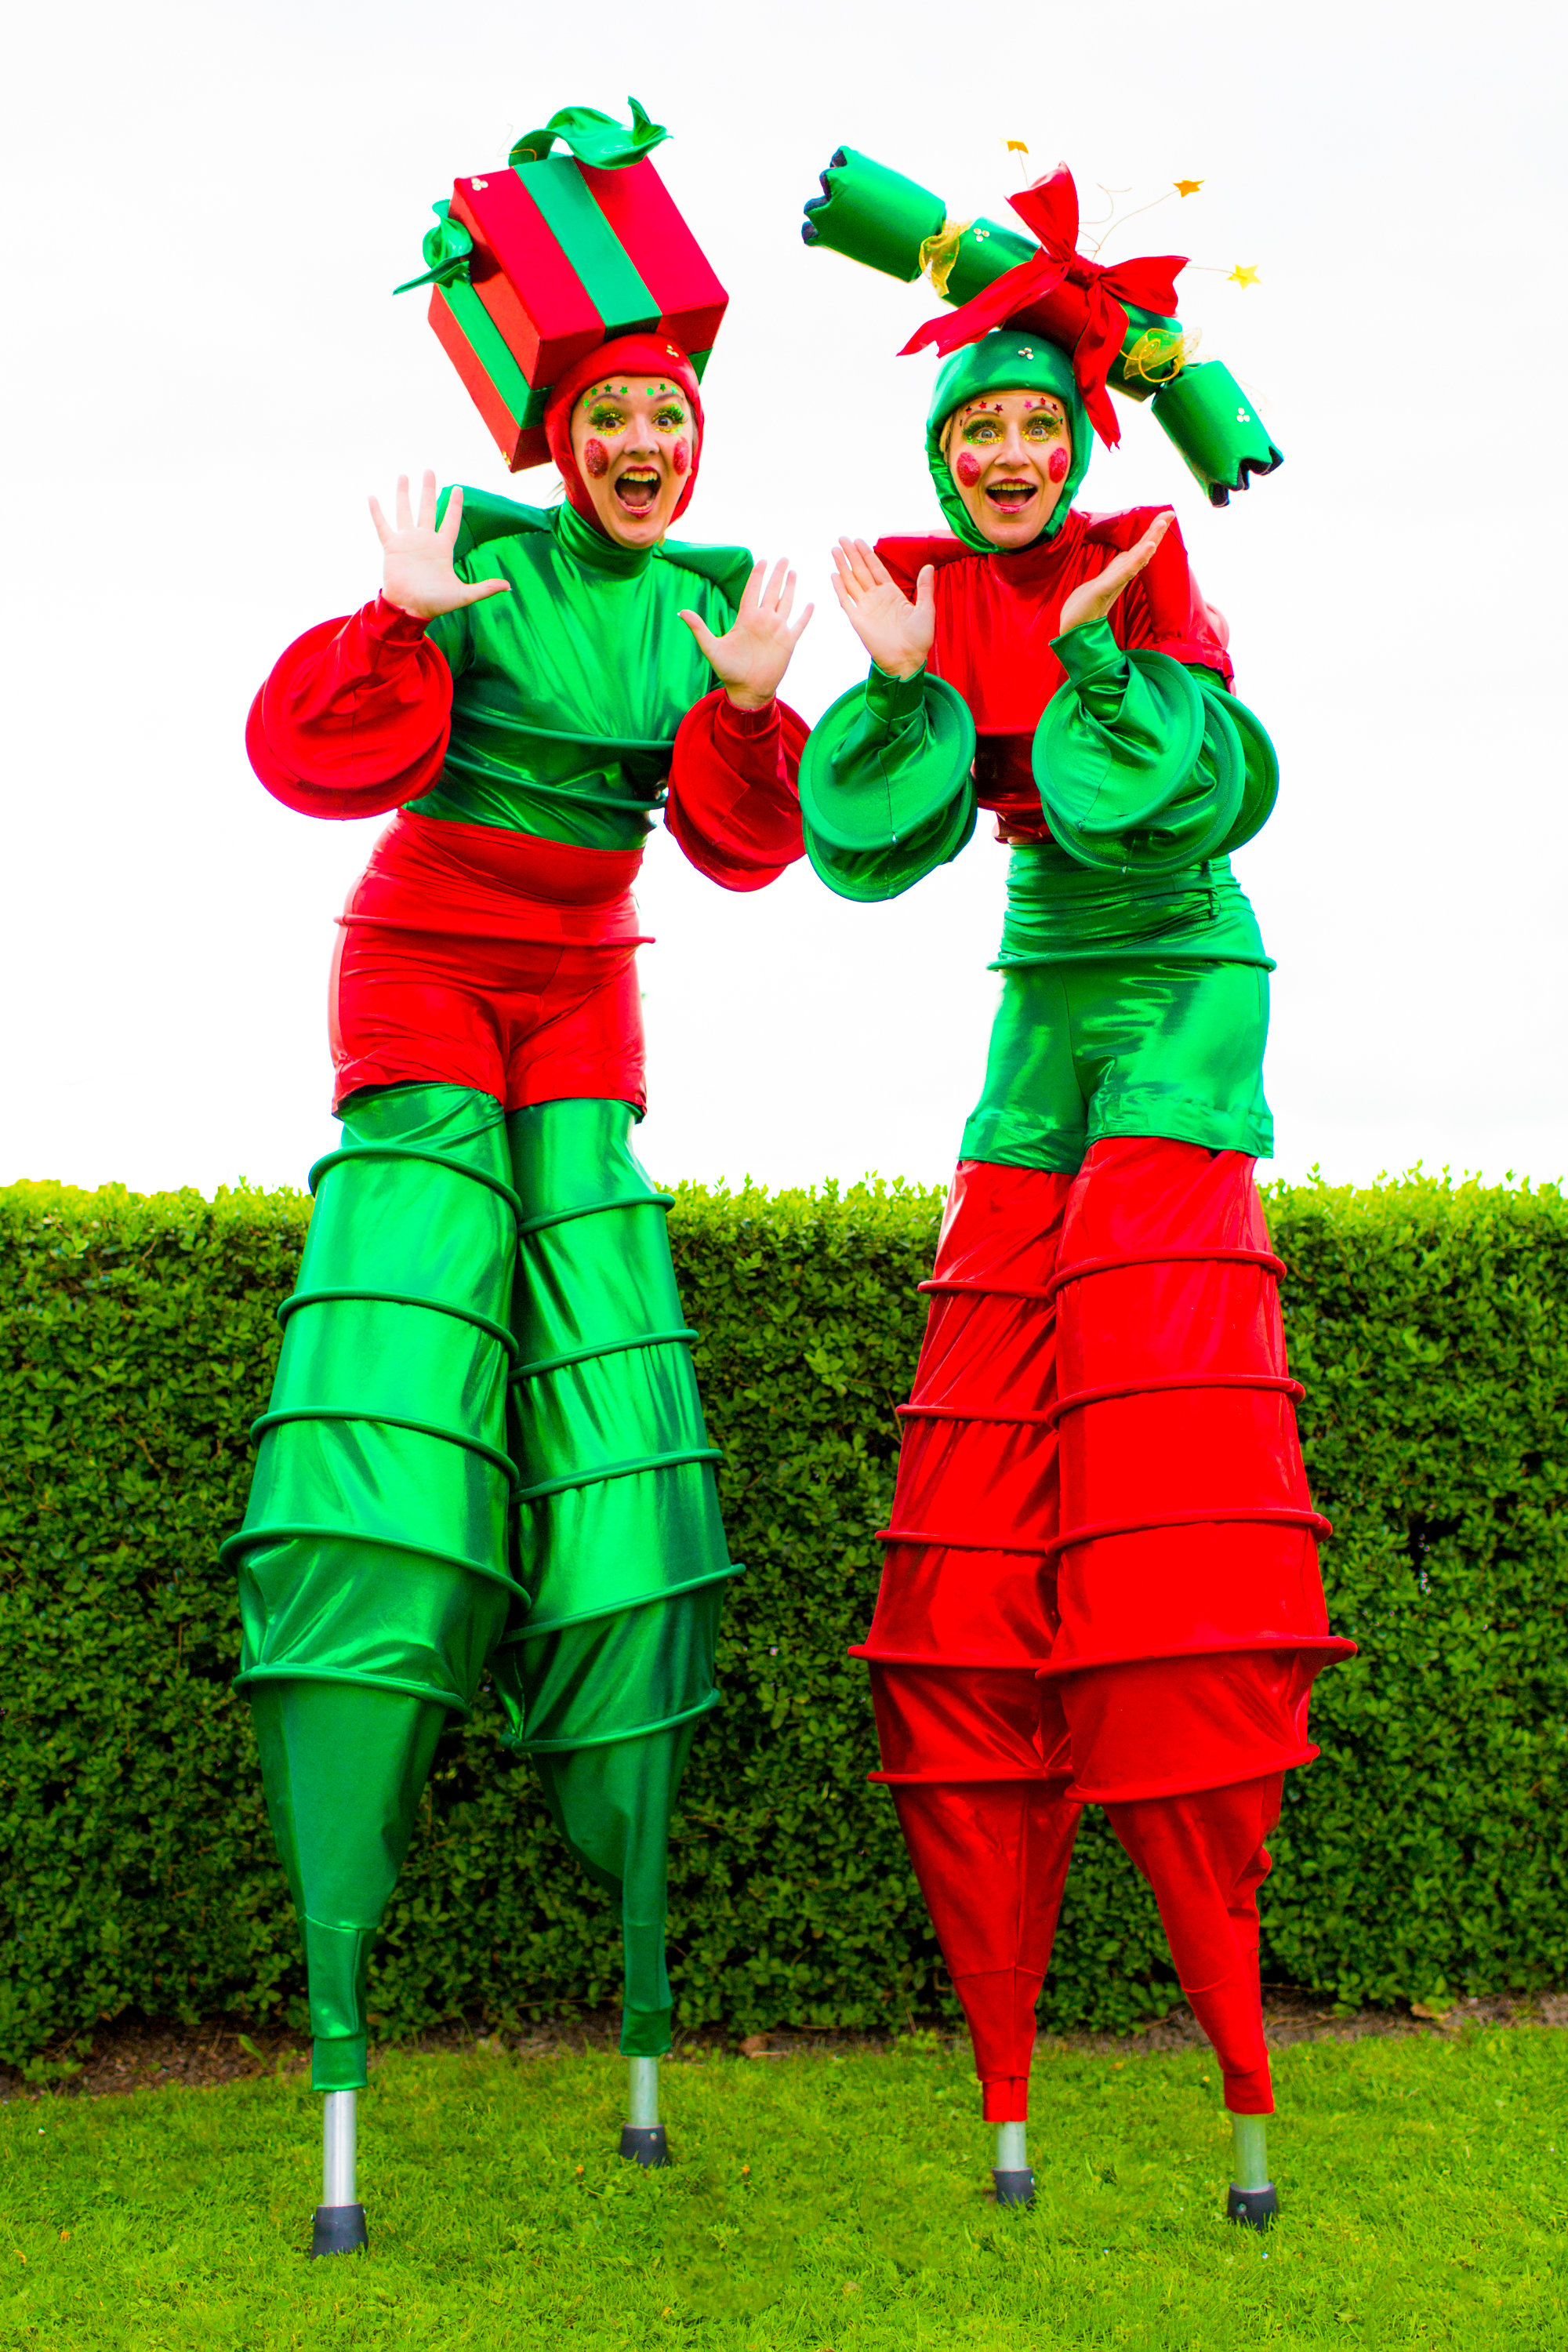 The Christmas Stilt Walkers